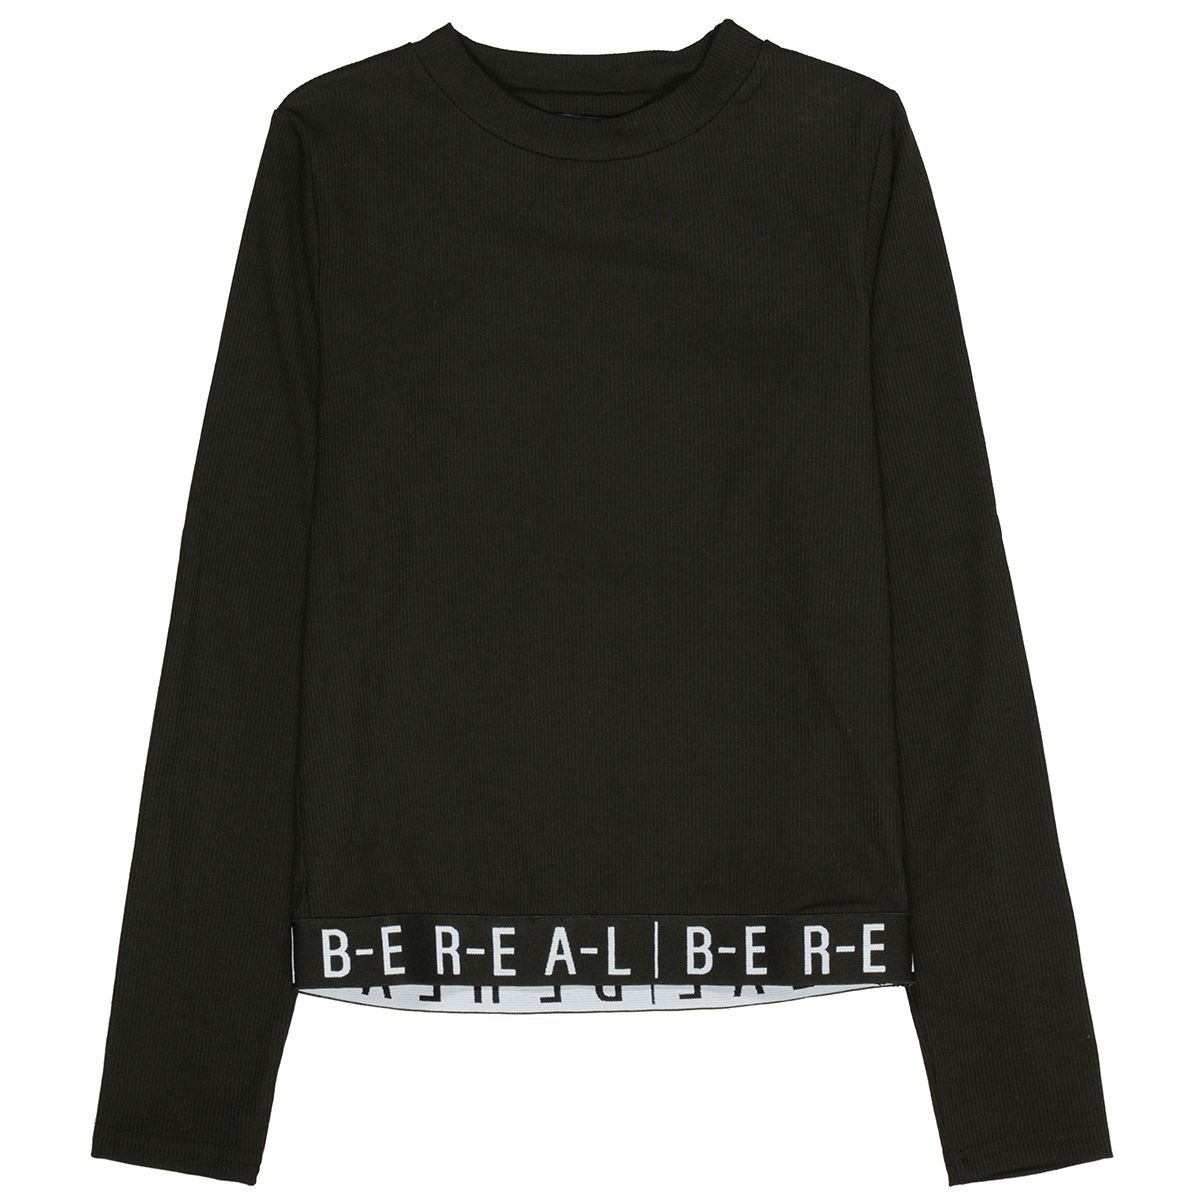 ATTENTION Rippshirt BE REAL - Black